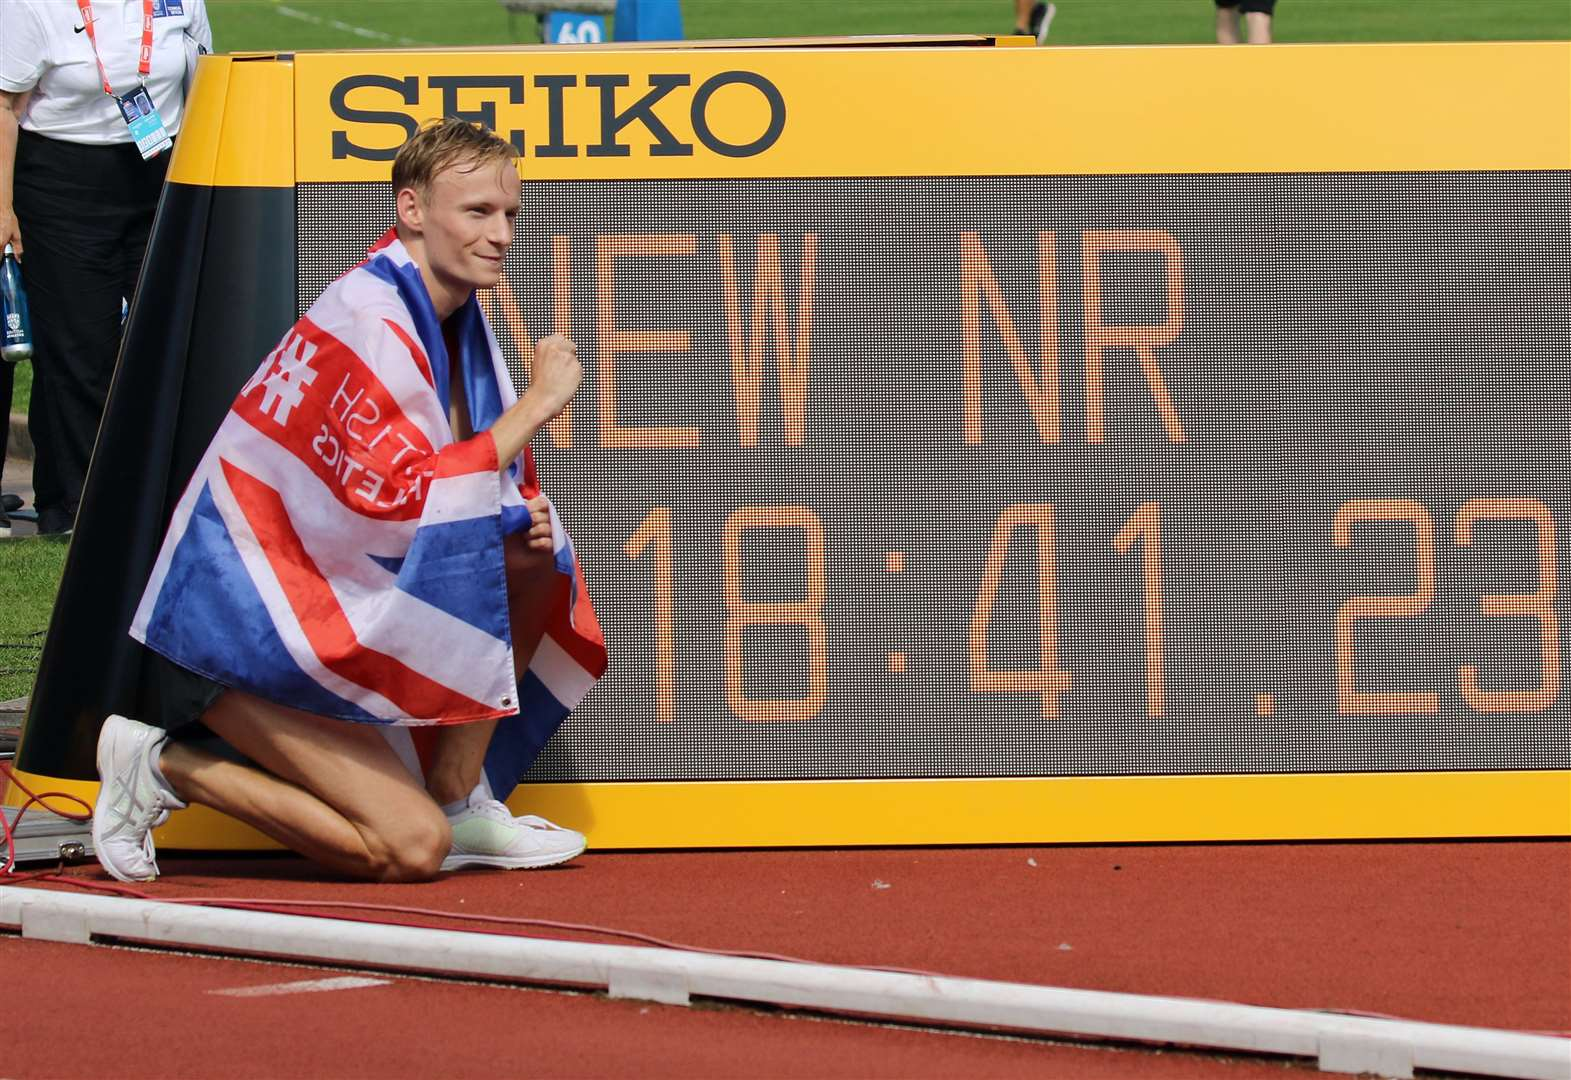 From Scaltback to new British record holder